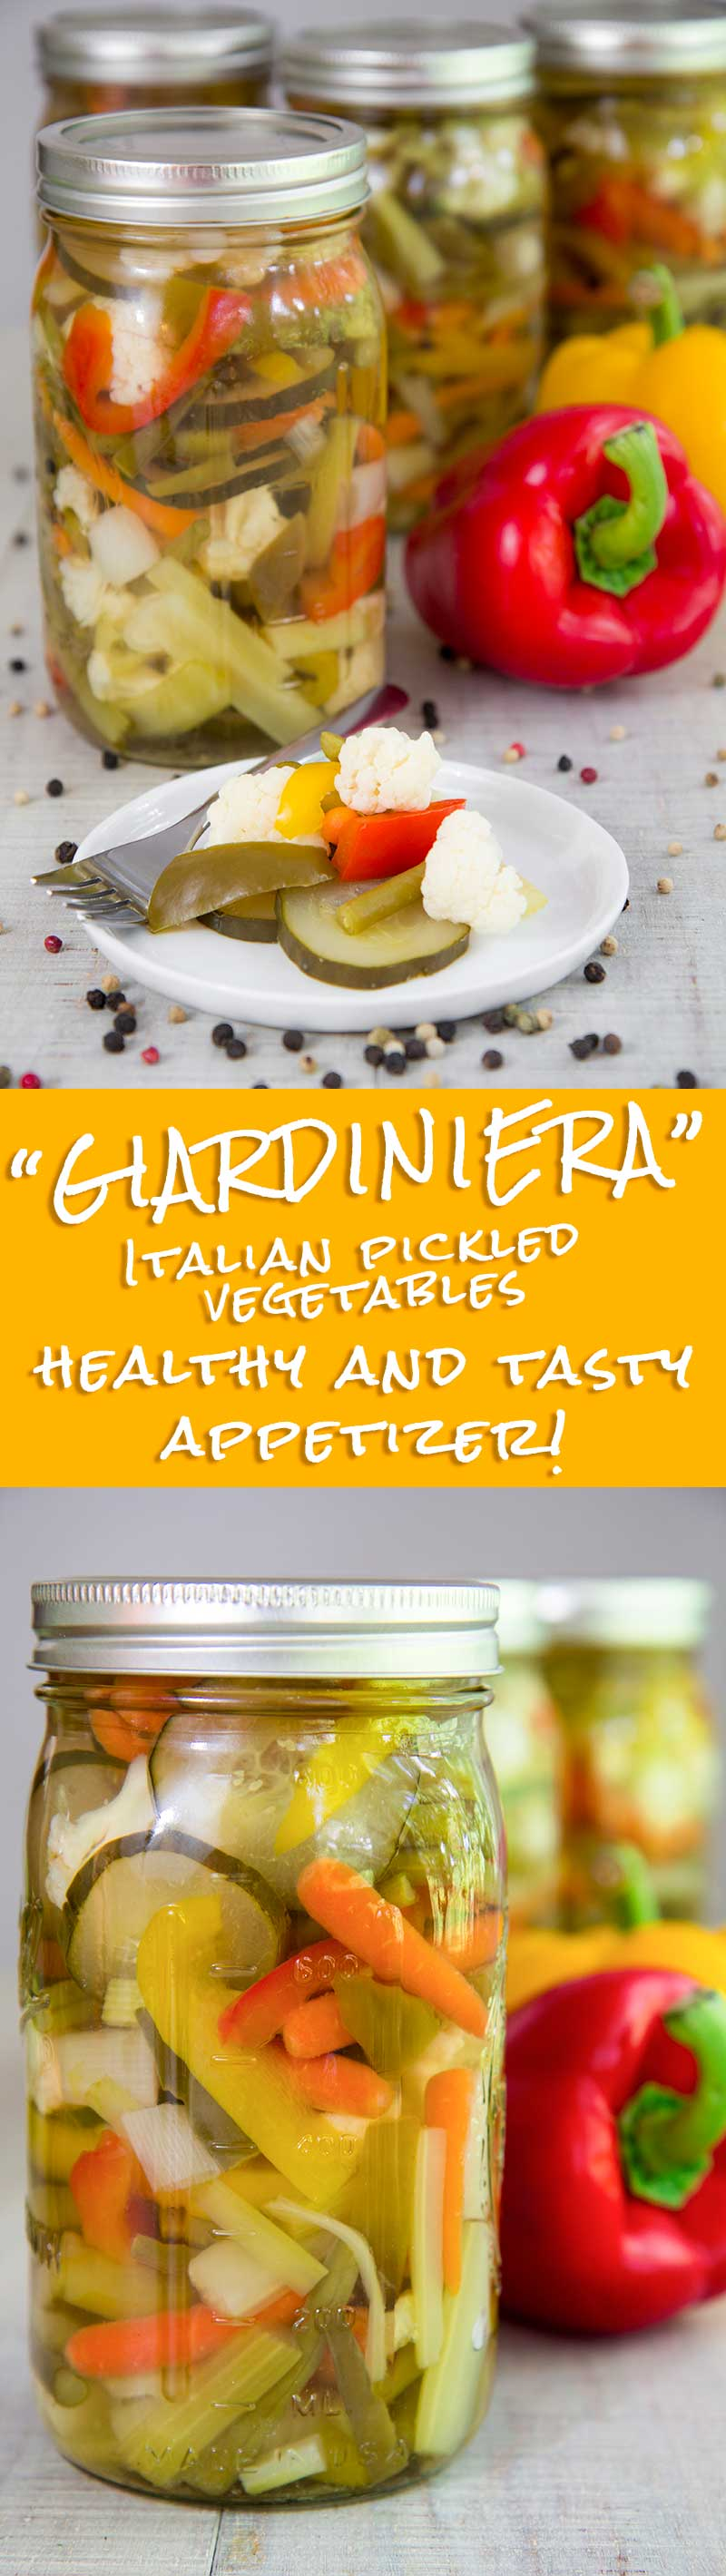 GIARDINIERA RECIPE: the Italian pickled vegetables appetizer